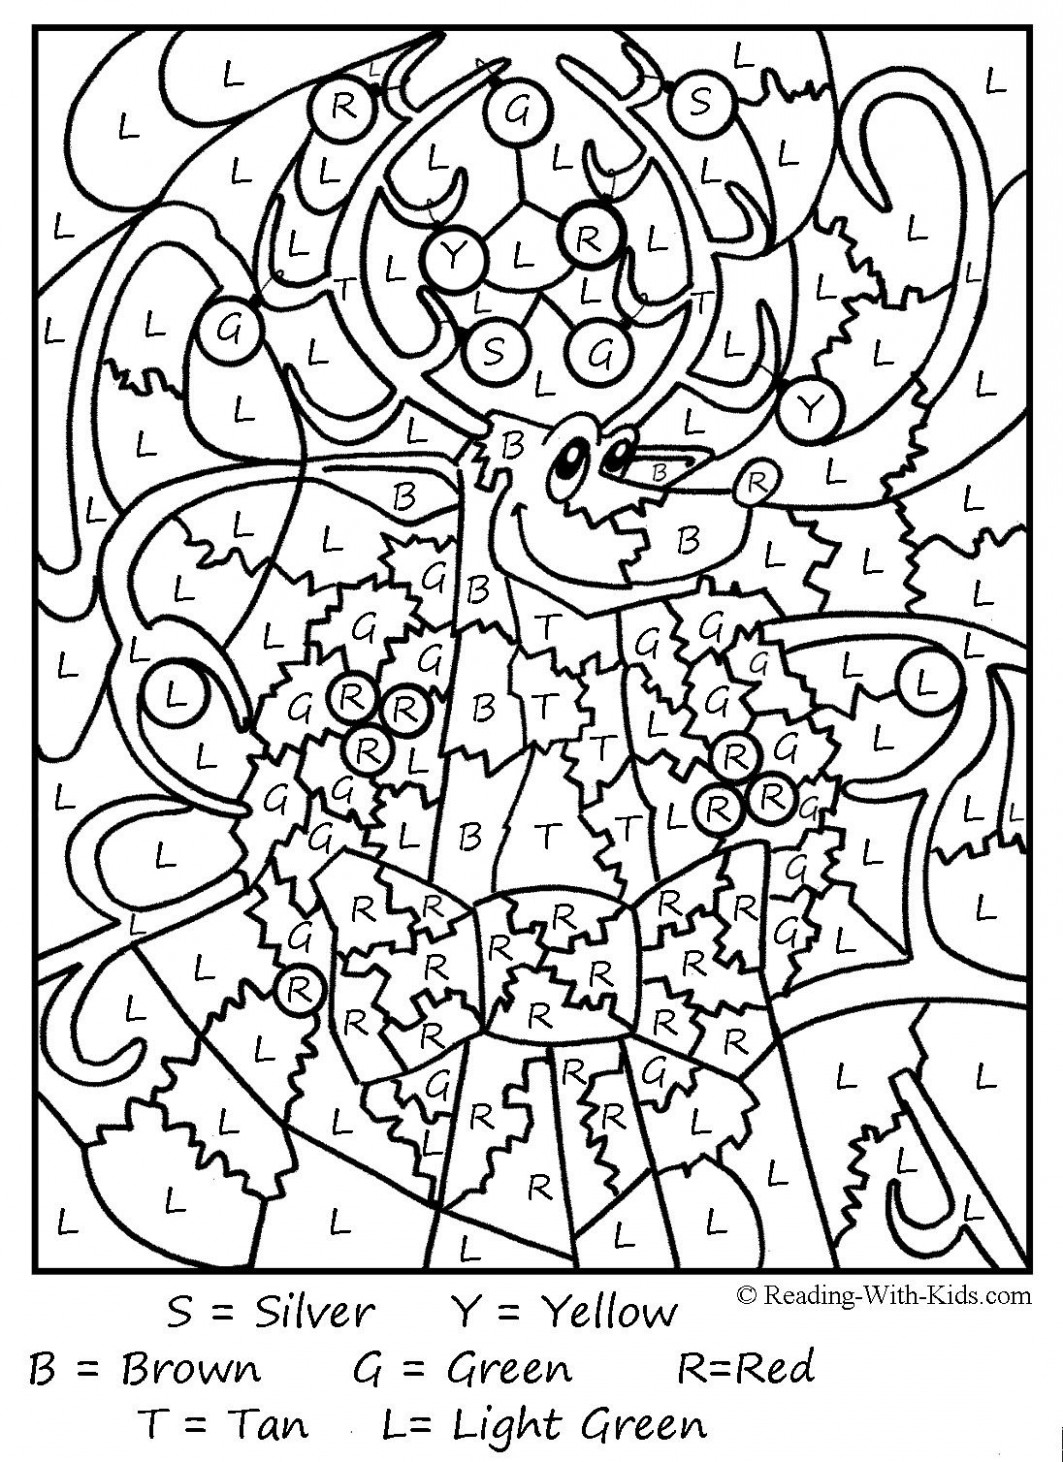 Christmas Color By Number Coloring Pages Printable | coloring pages ...